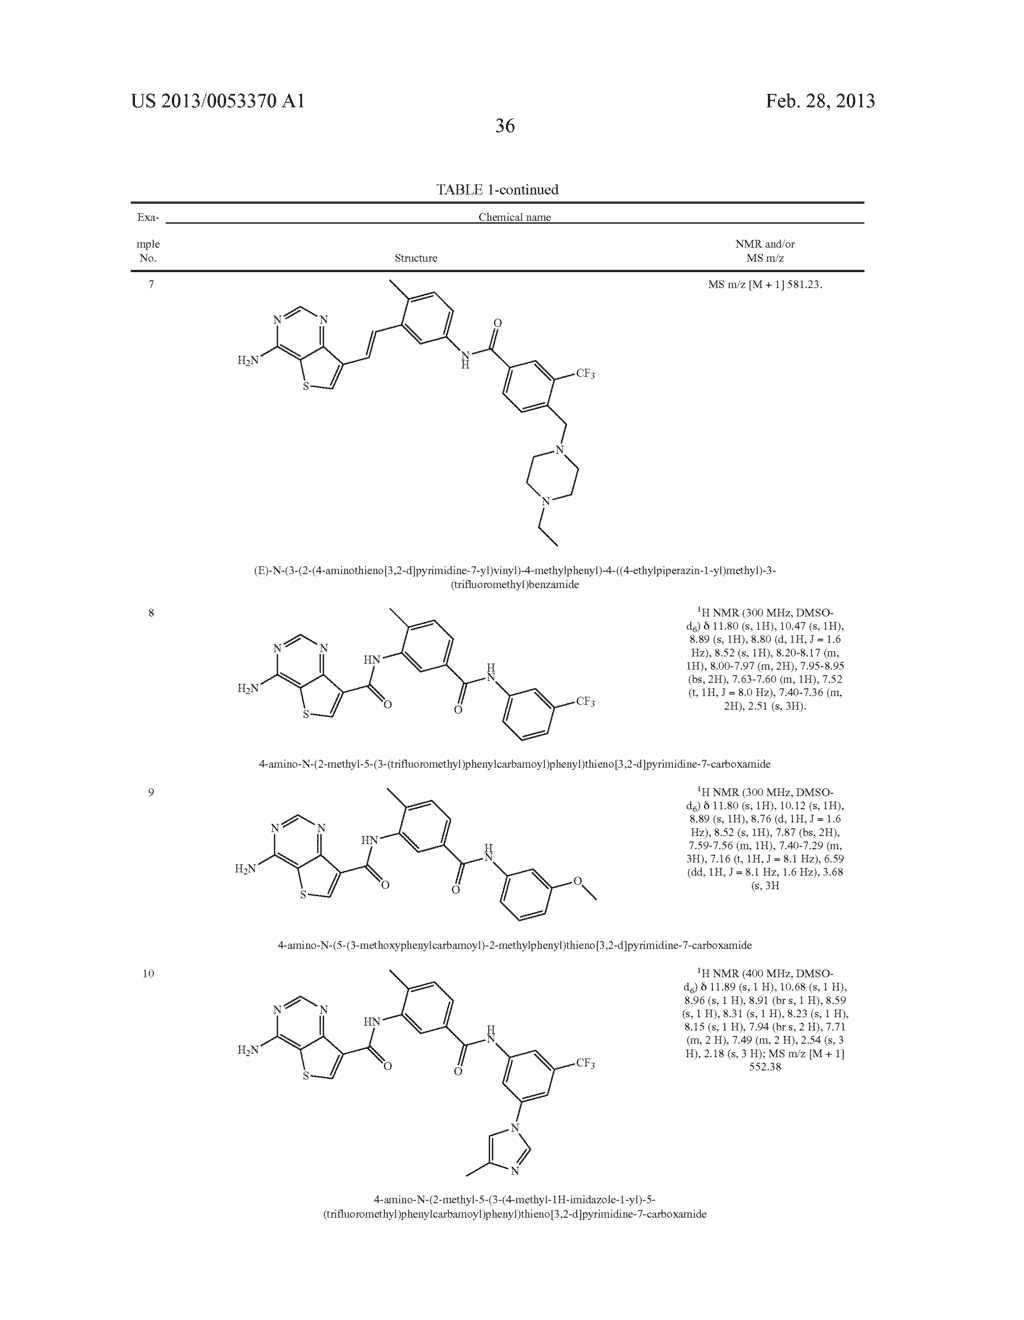 THIENO[3,2-d]PYRIMIDINE DERIVATIVES HAVING INHIBITORY ACTIVITY ON PROTEIN     KINASES - diagram, schematic, and image 37